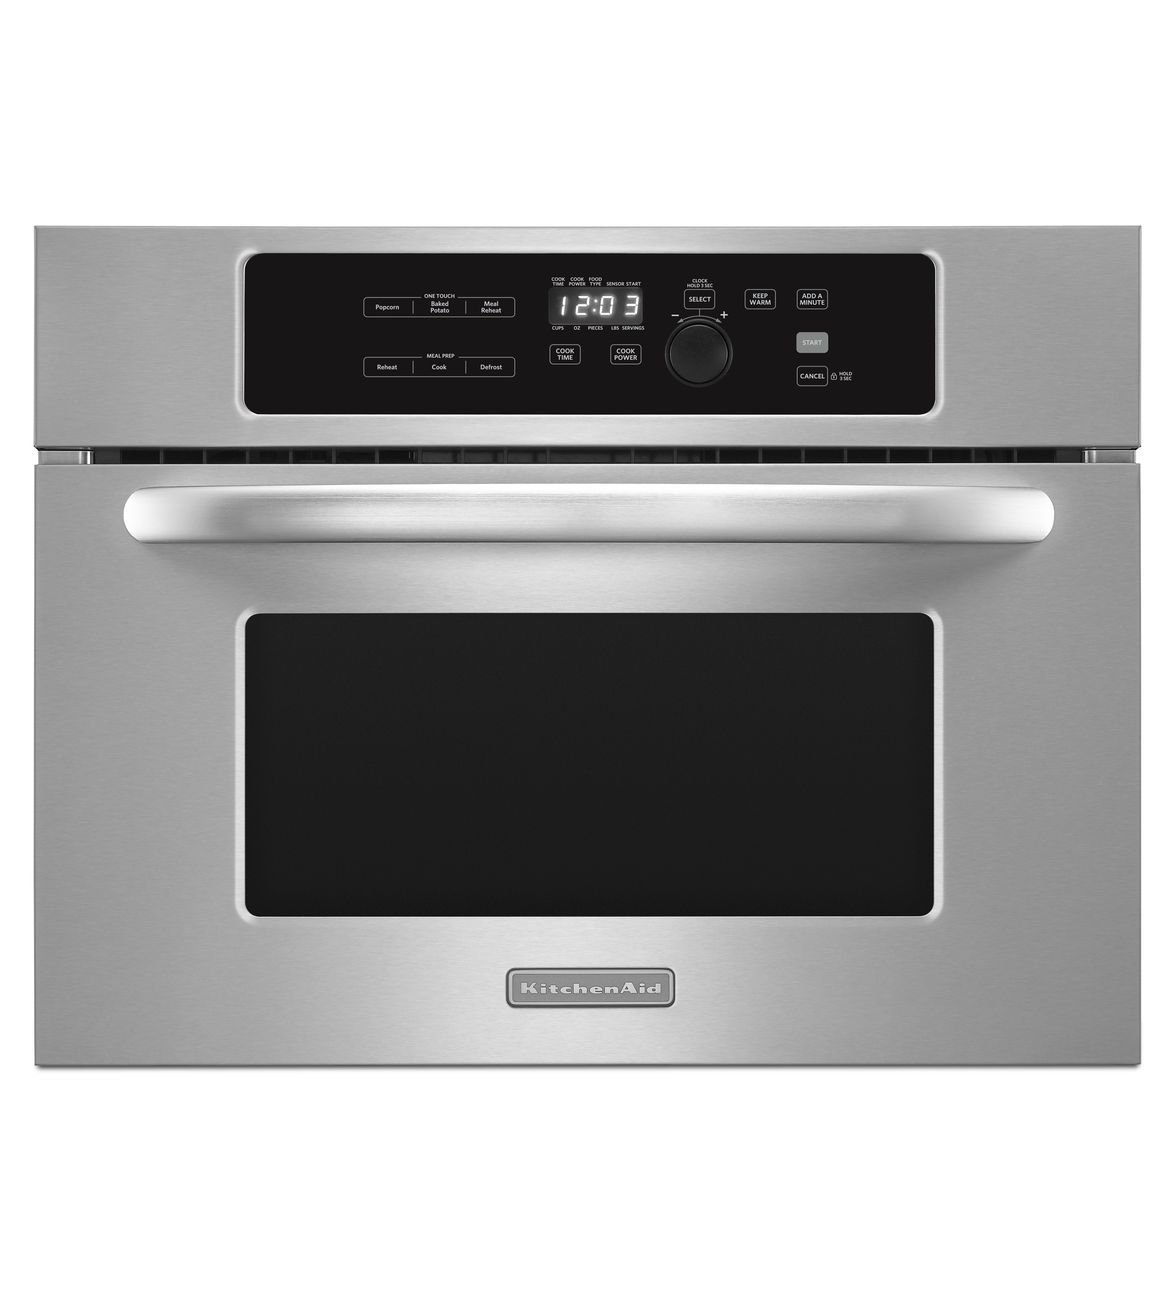 Amazon.com: KitchenAid Architect Series II KBMS1454BSS 1.4 Cu. Ft. Built In  Microwave Oven: Appliances